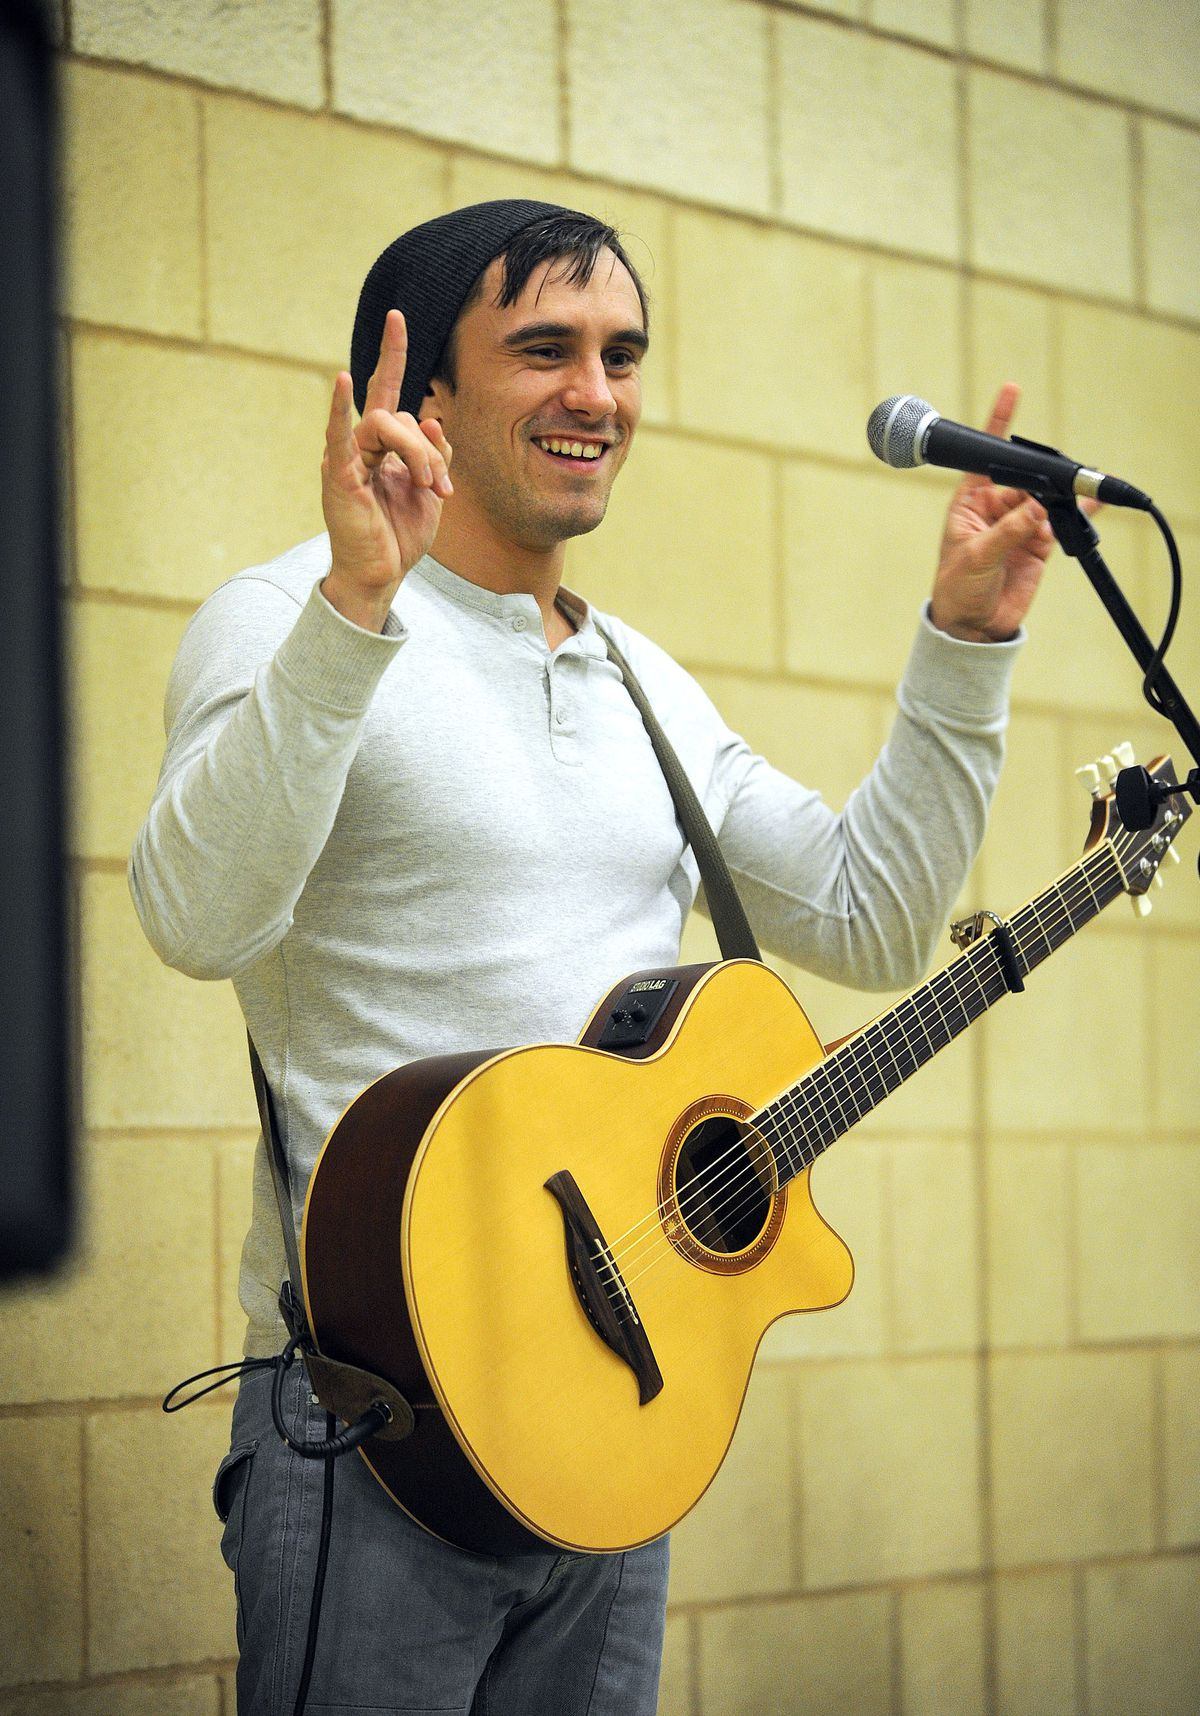 X Factor contestant Joseph Whelan performed a fundraising concert at the Charlton School in Wellington.